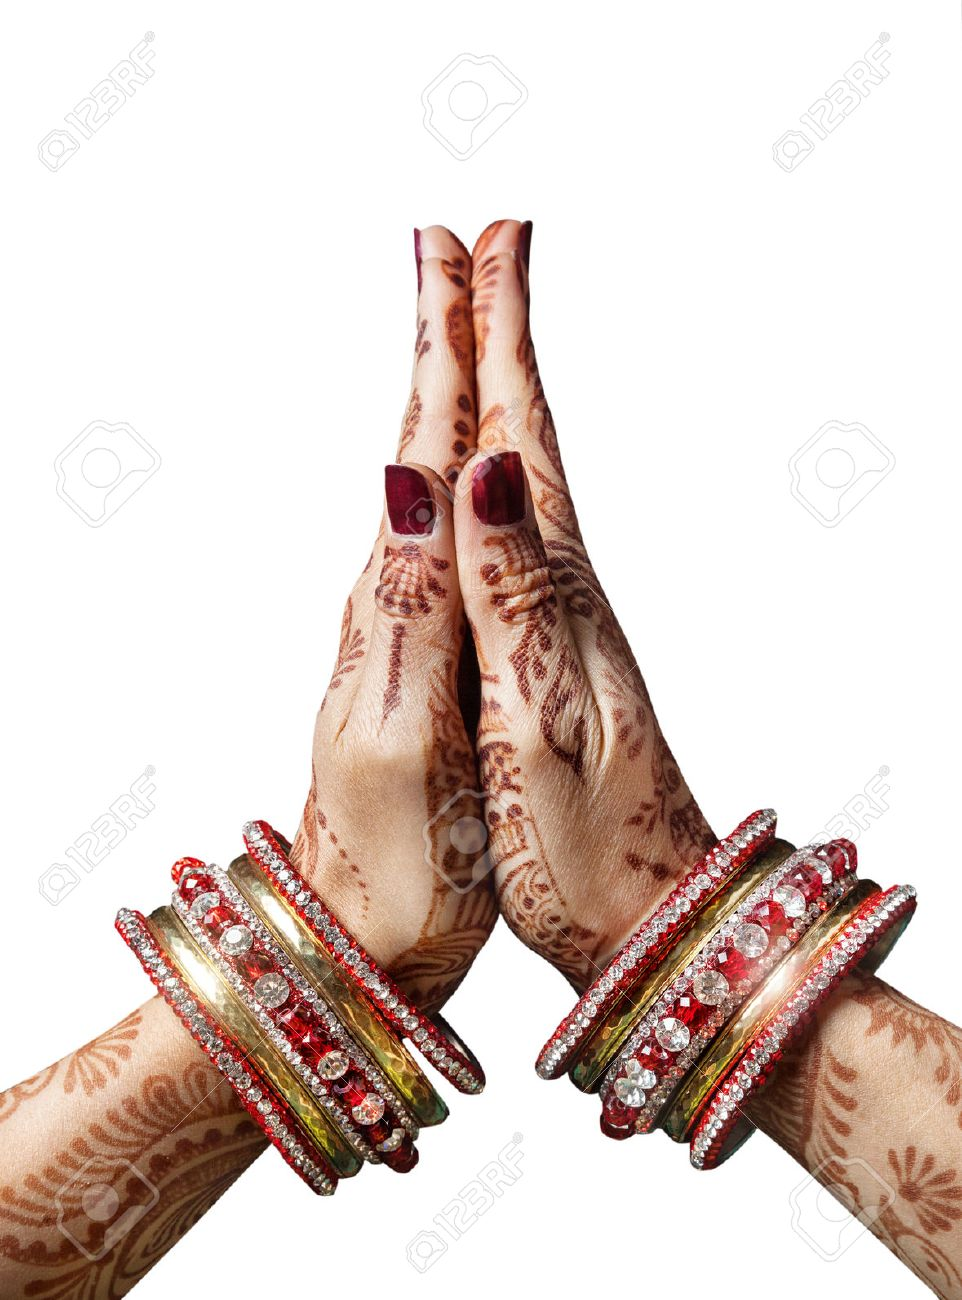 Mudra stock photos royalty free mudra images woman hands with henna in namaste mudra on white background stock photo izmirmasajfo